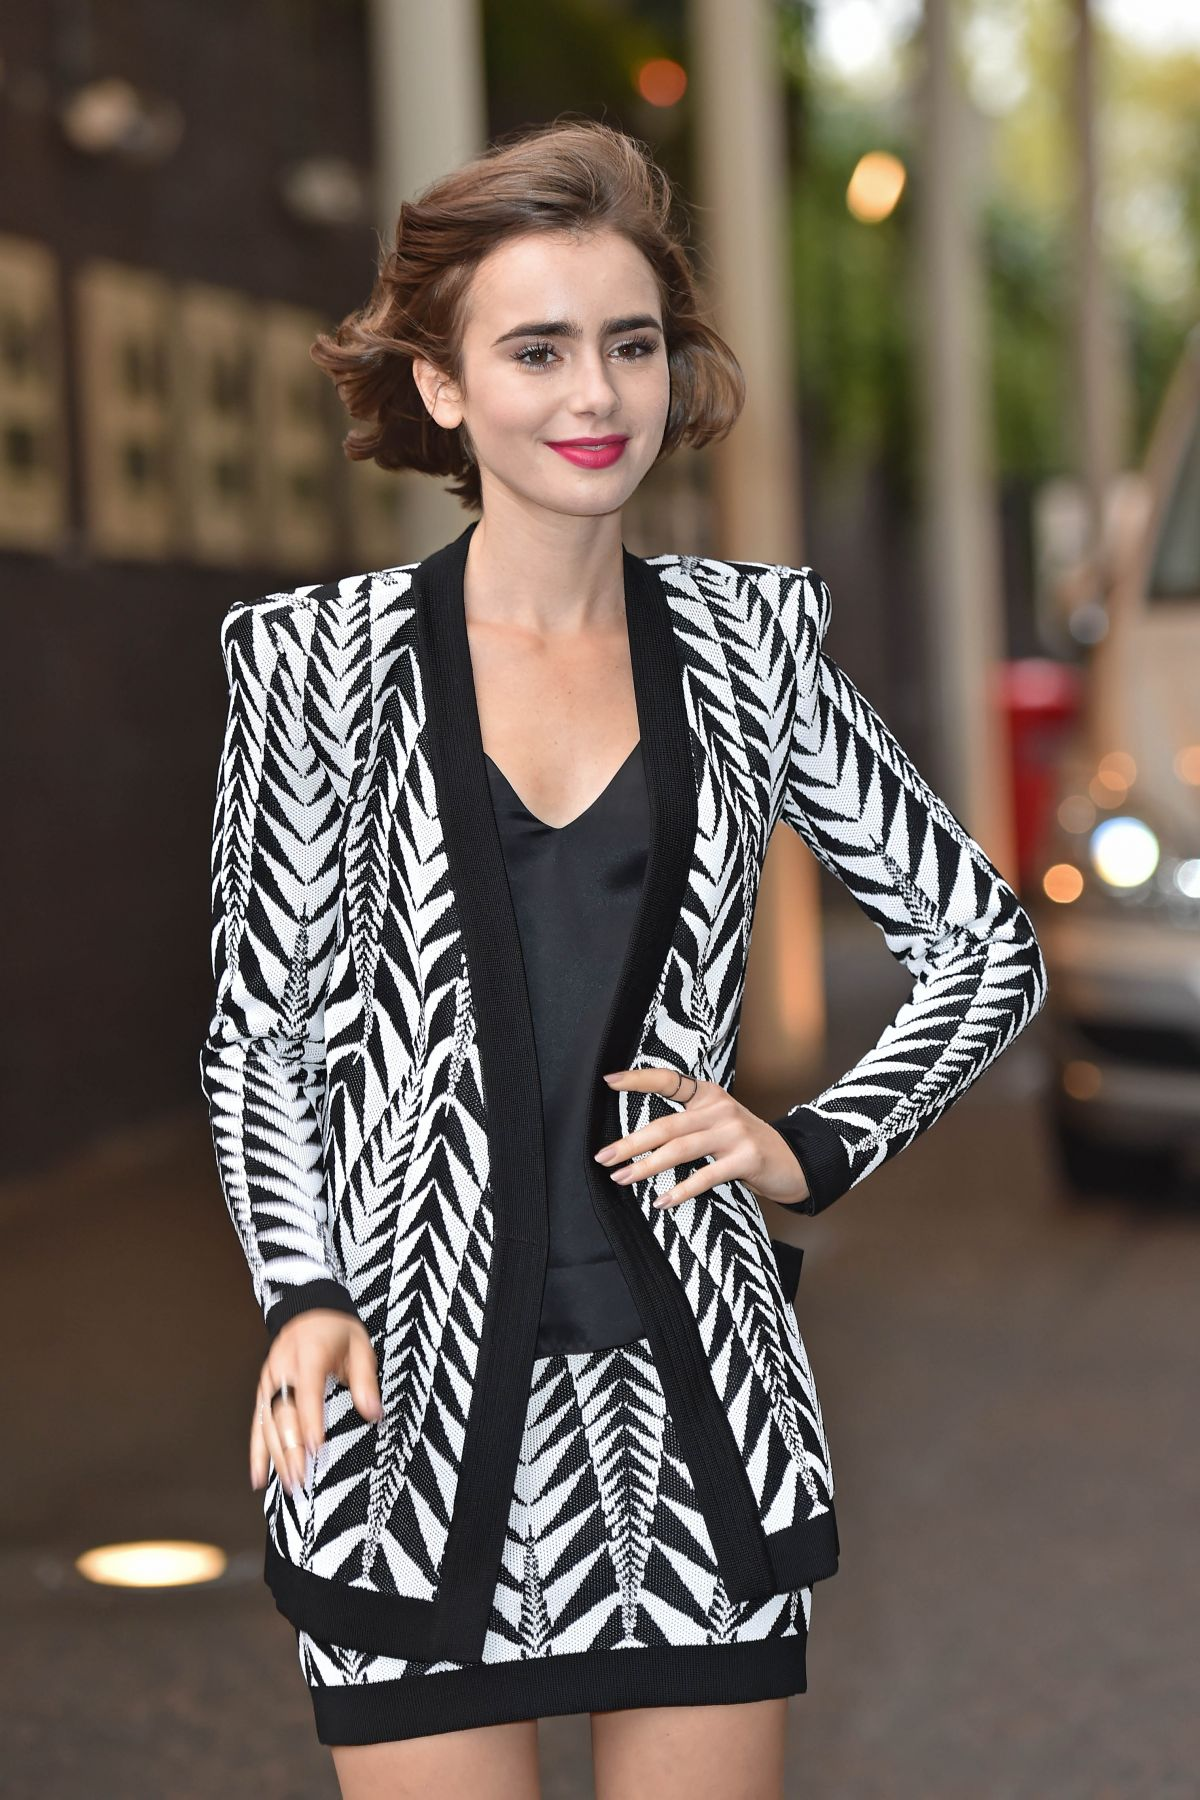 Lily Collins Outside The London Studios